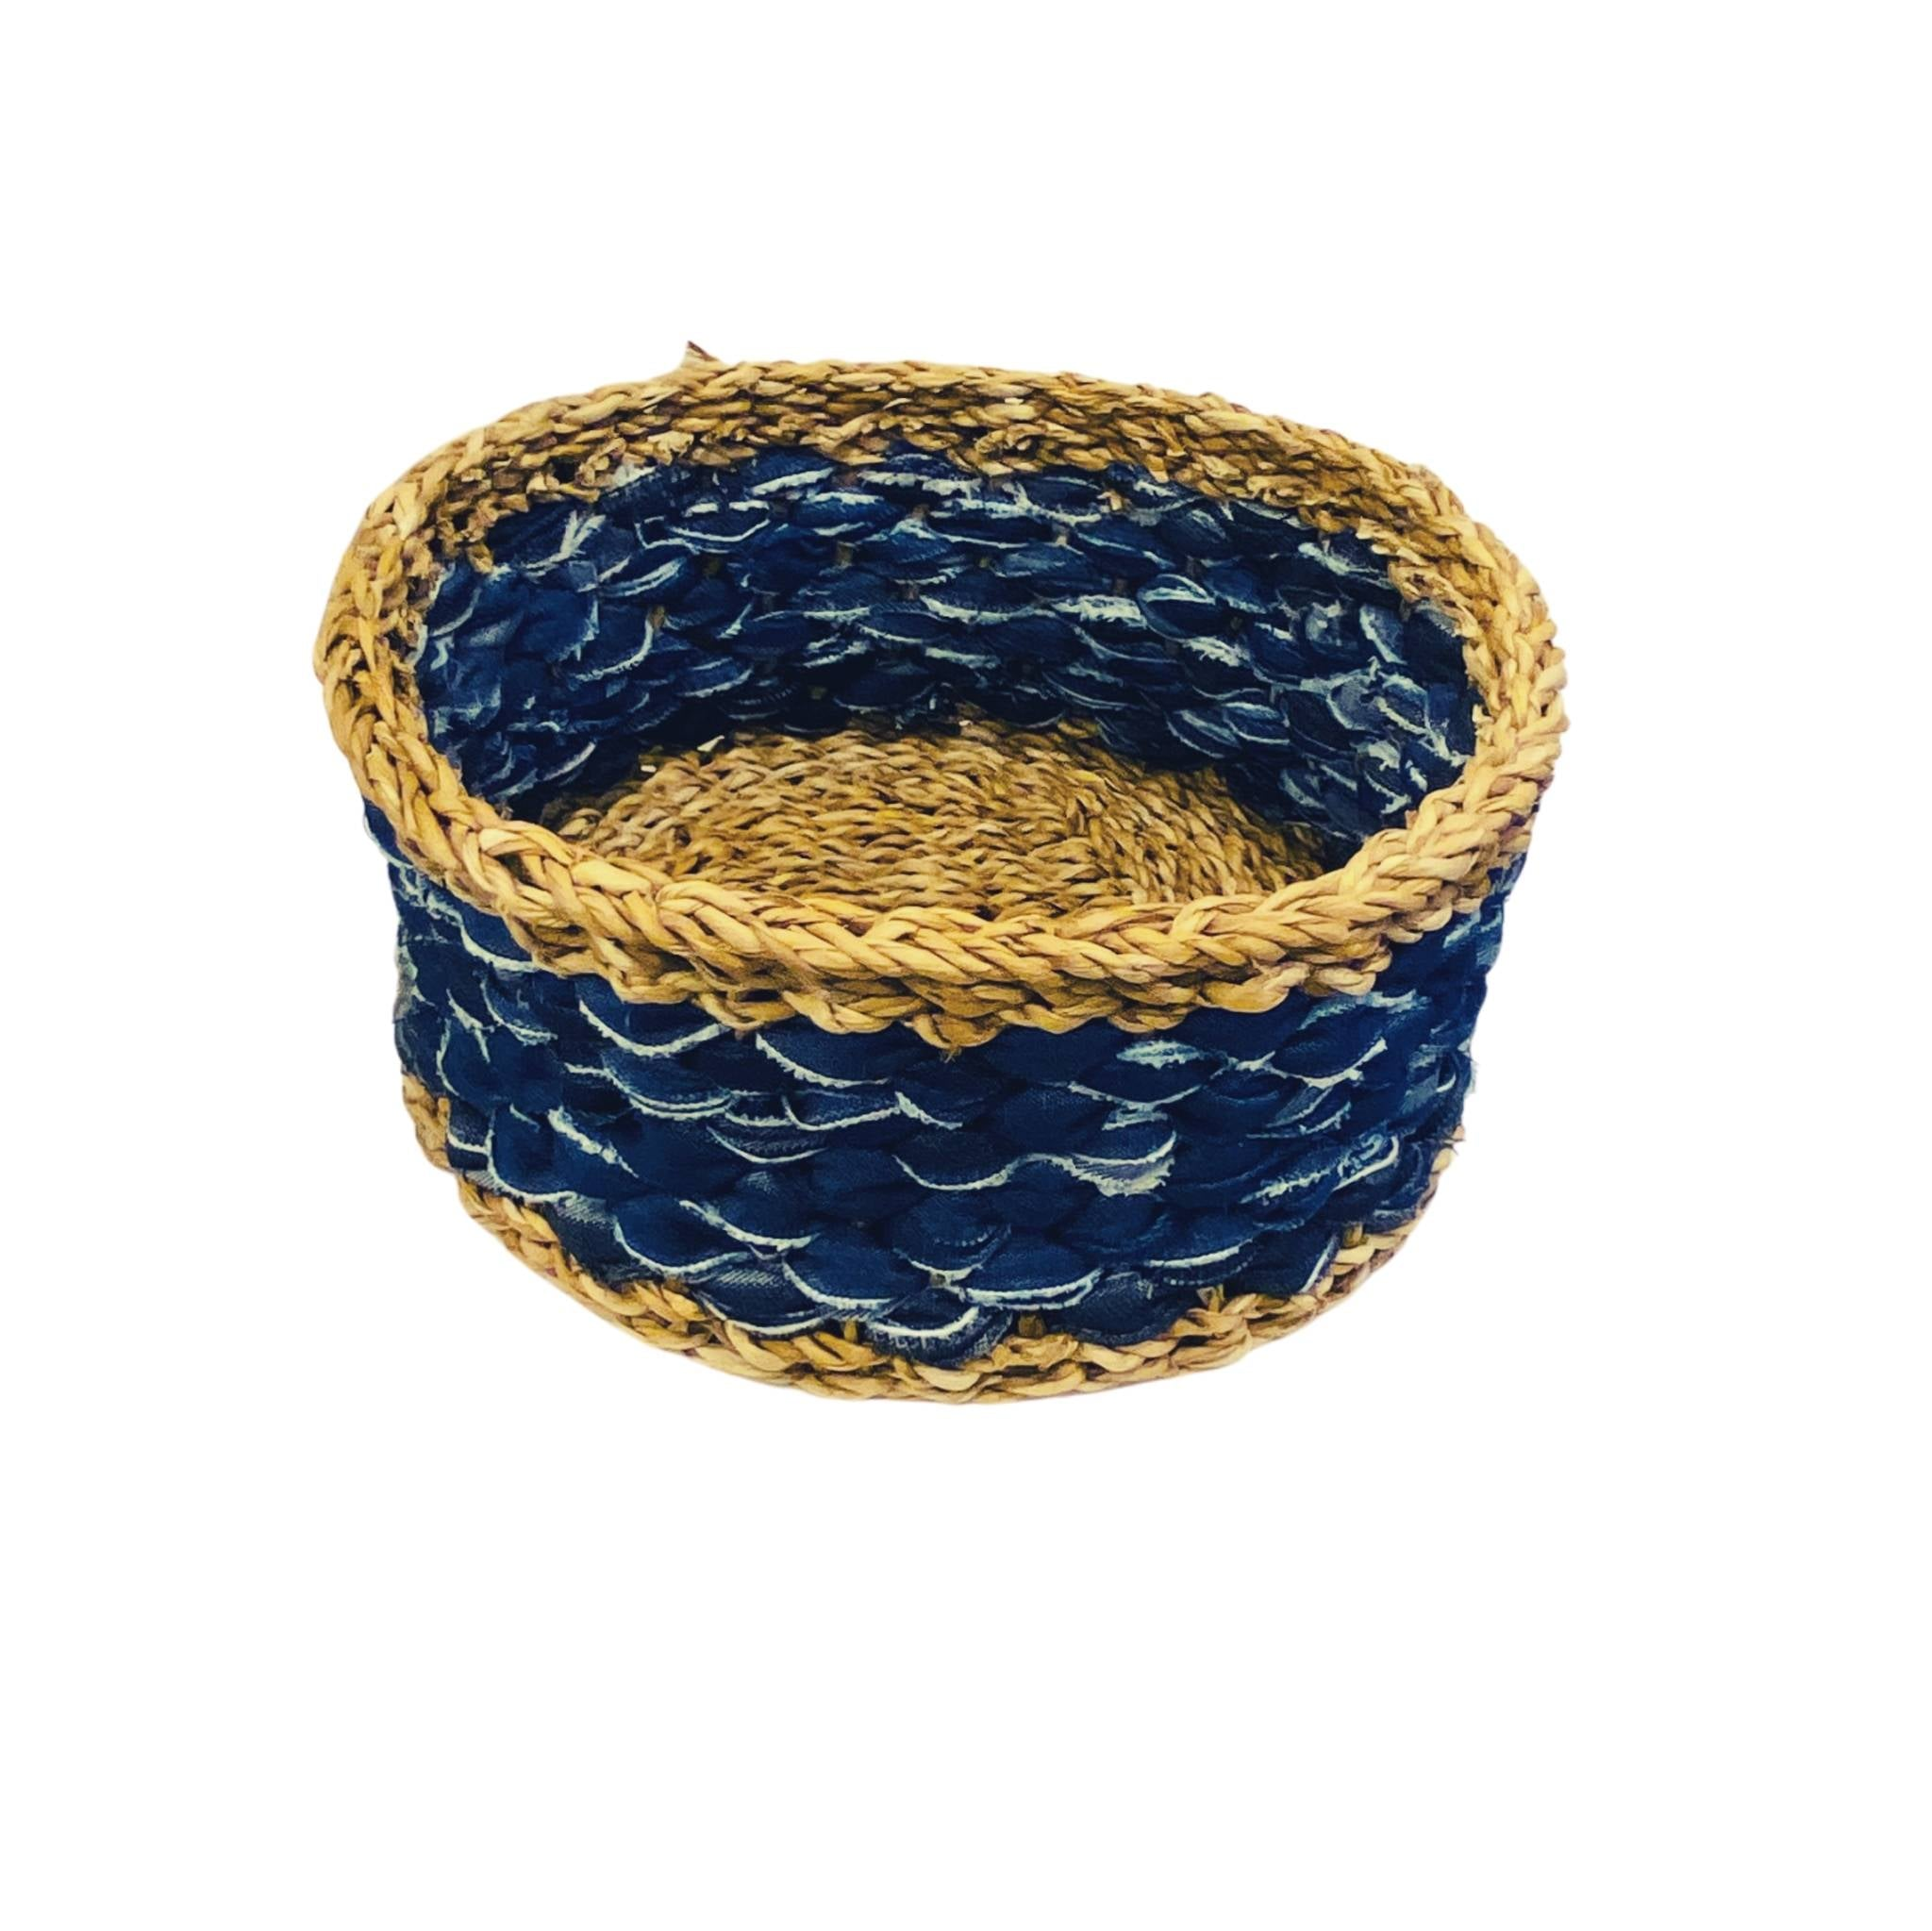 U-Chus Seagrass & Recycled Denim Basket - Large, Bangladesh